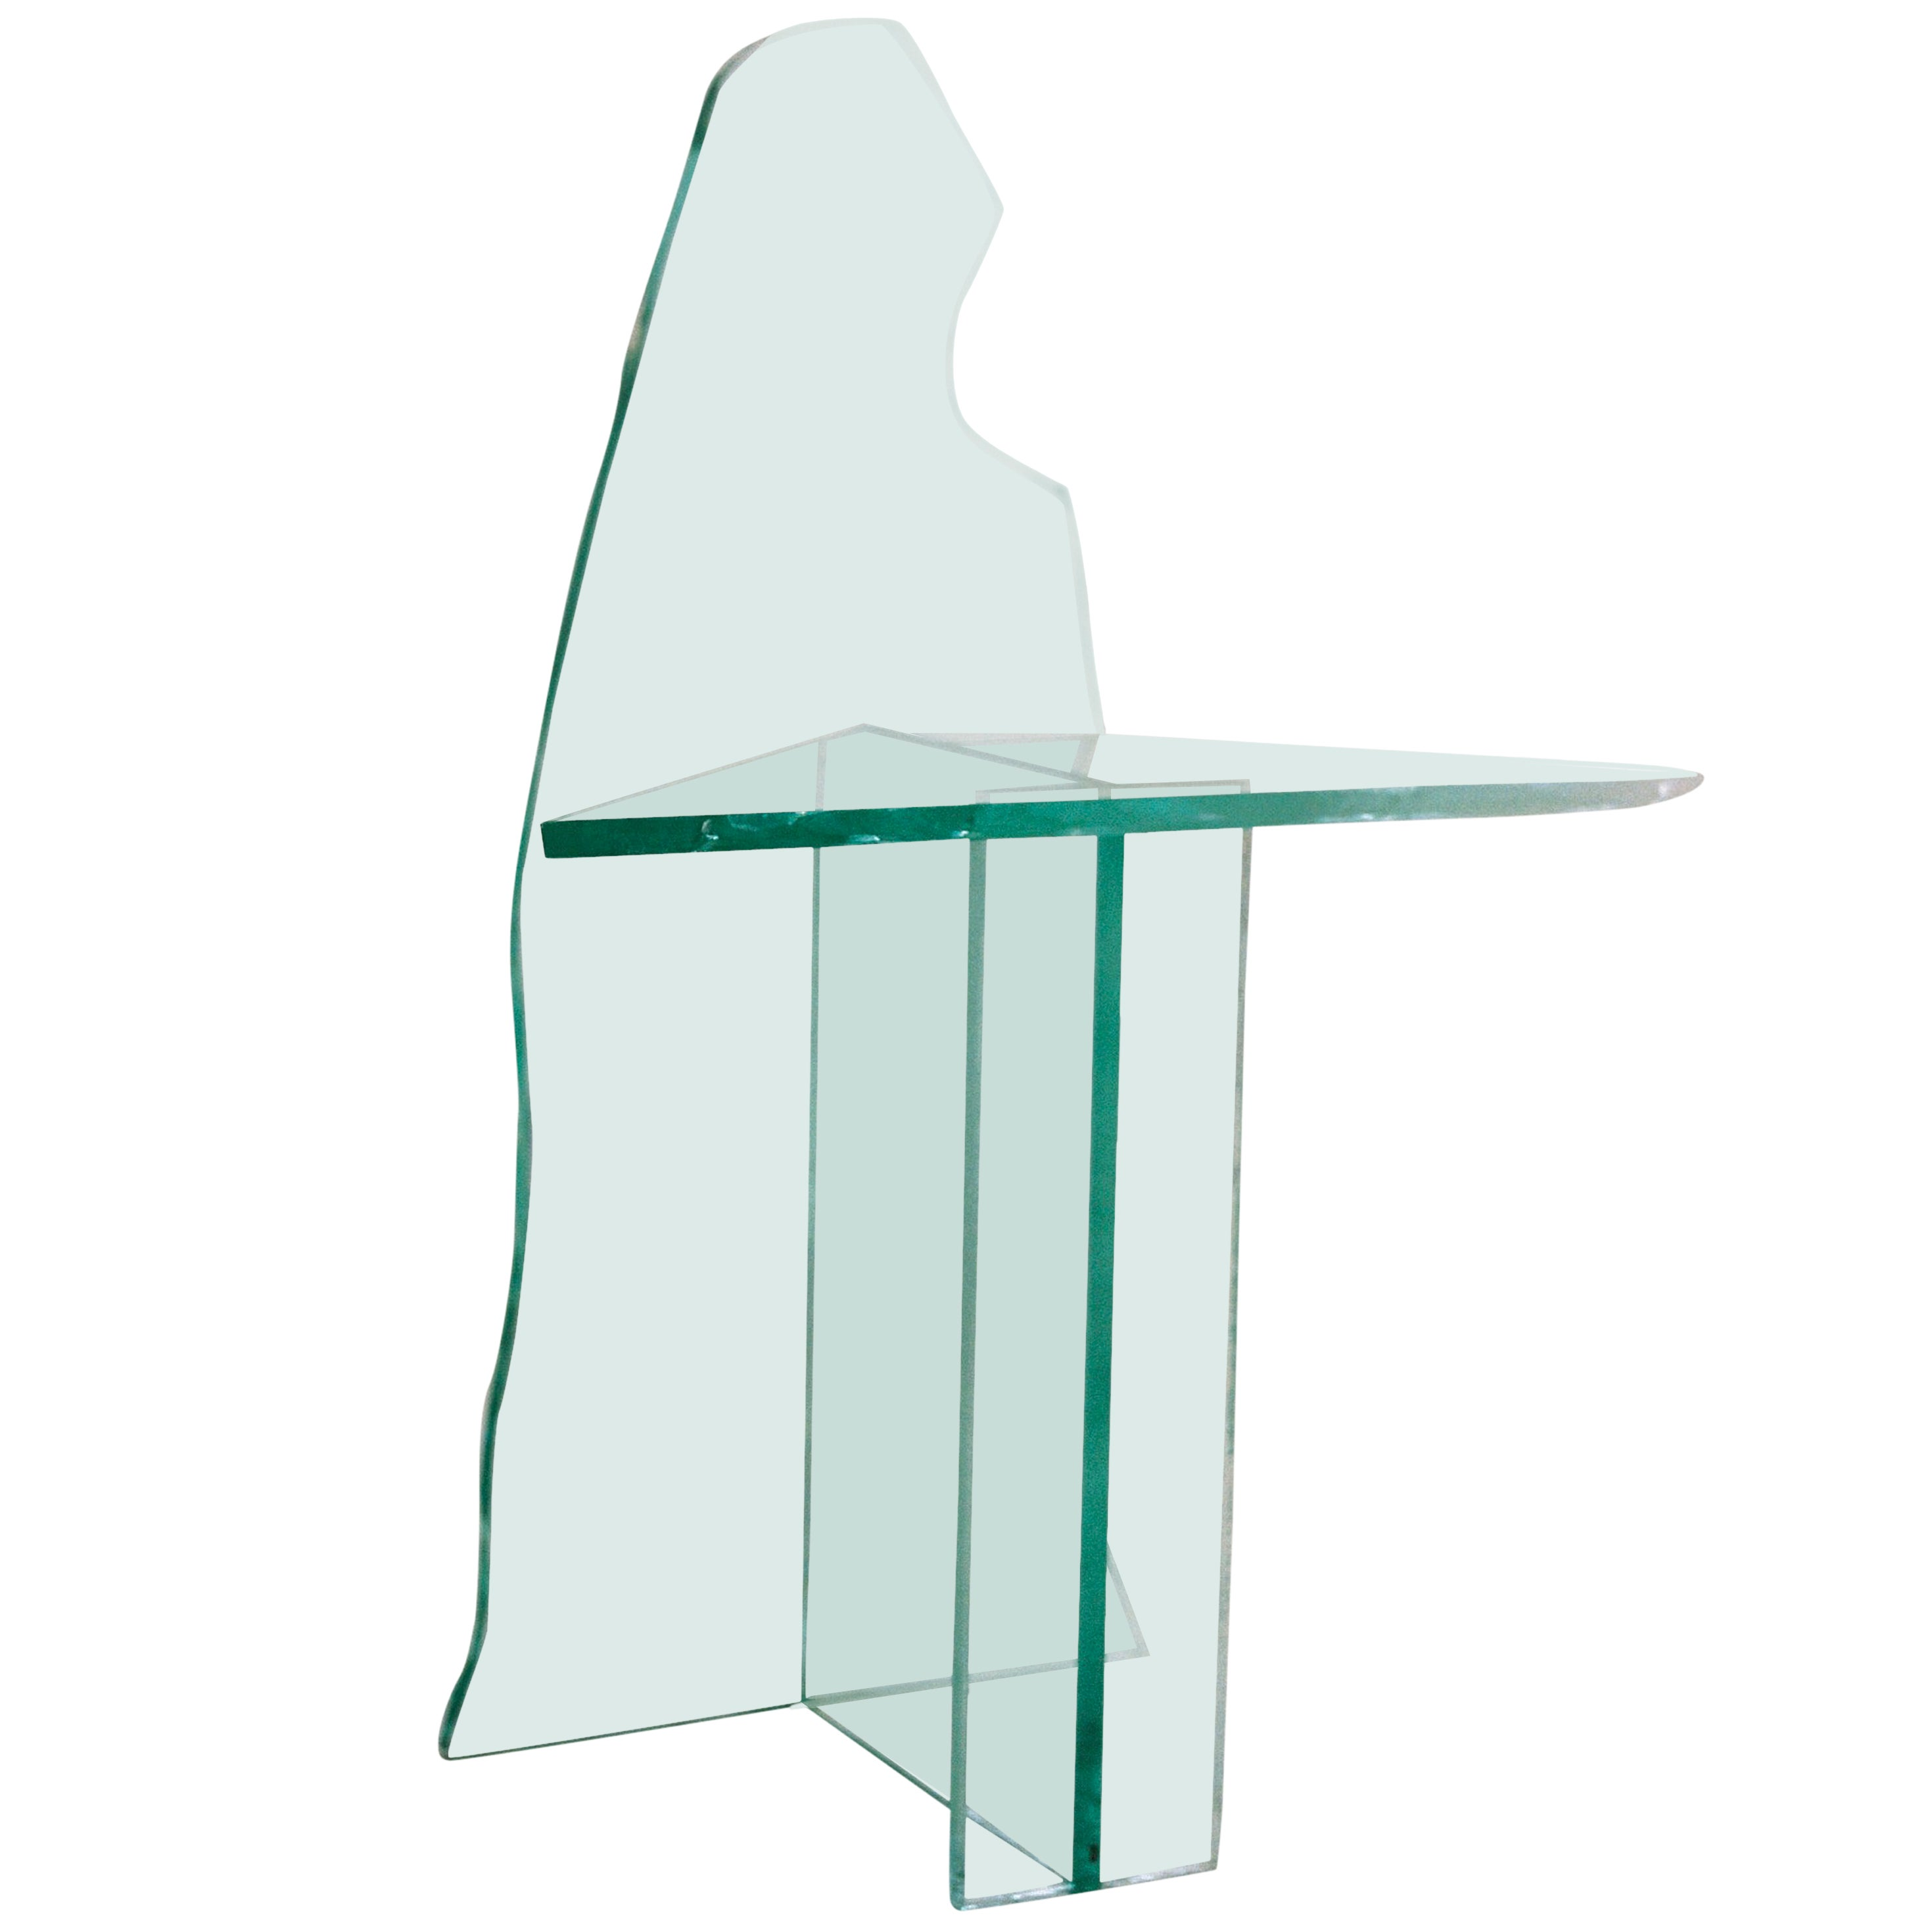 Glass Chair 2 by Guillermo Santoma